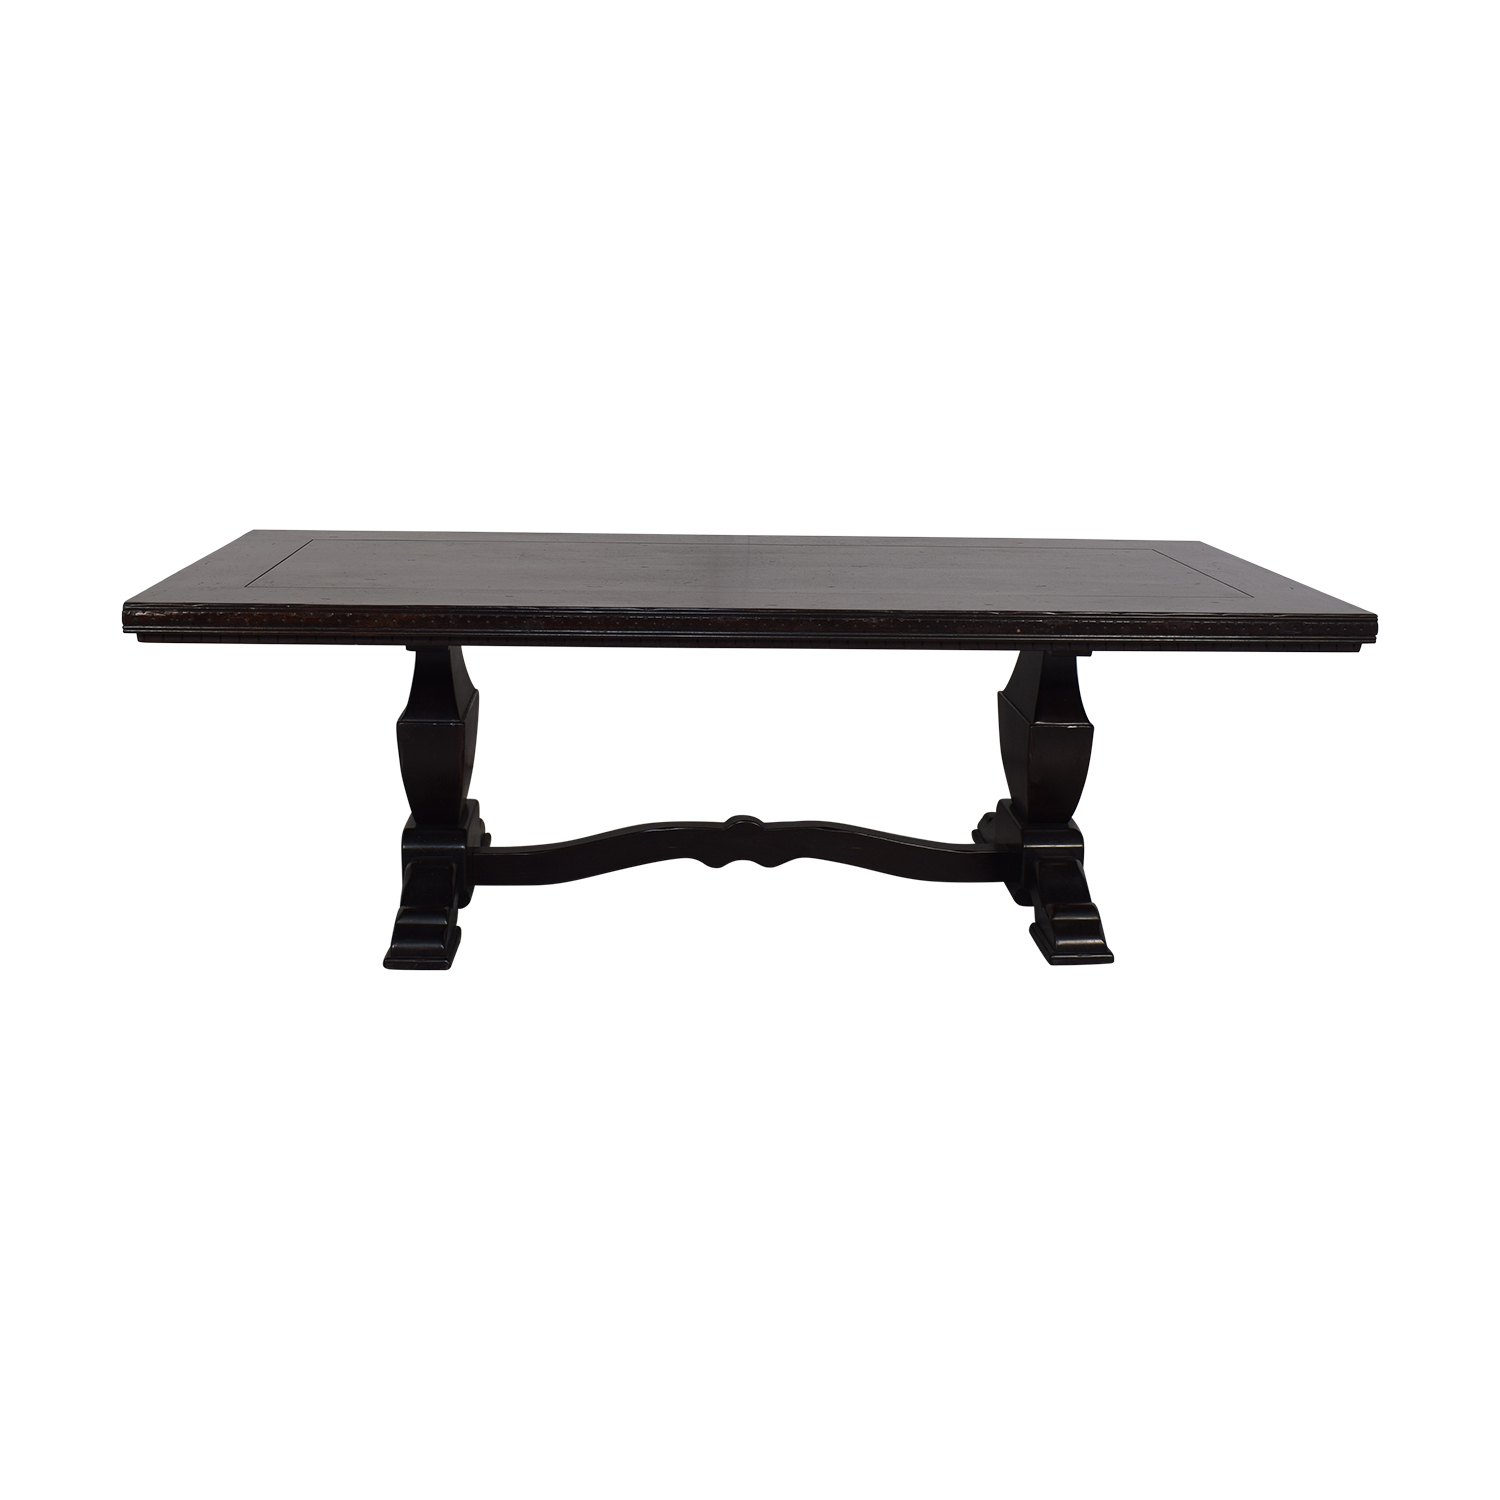 South Cone Furniture South Cone Furniture Salvatore Reclaimed Wood Dining Table